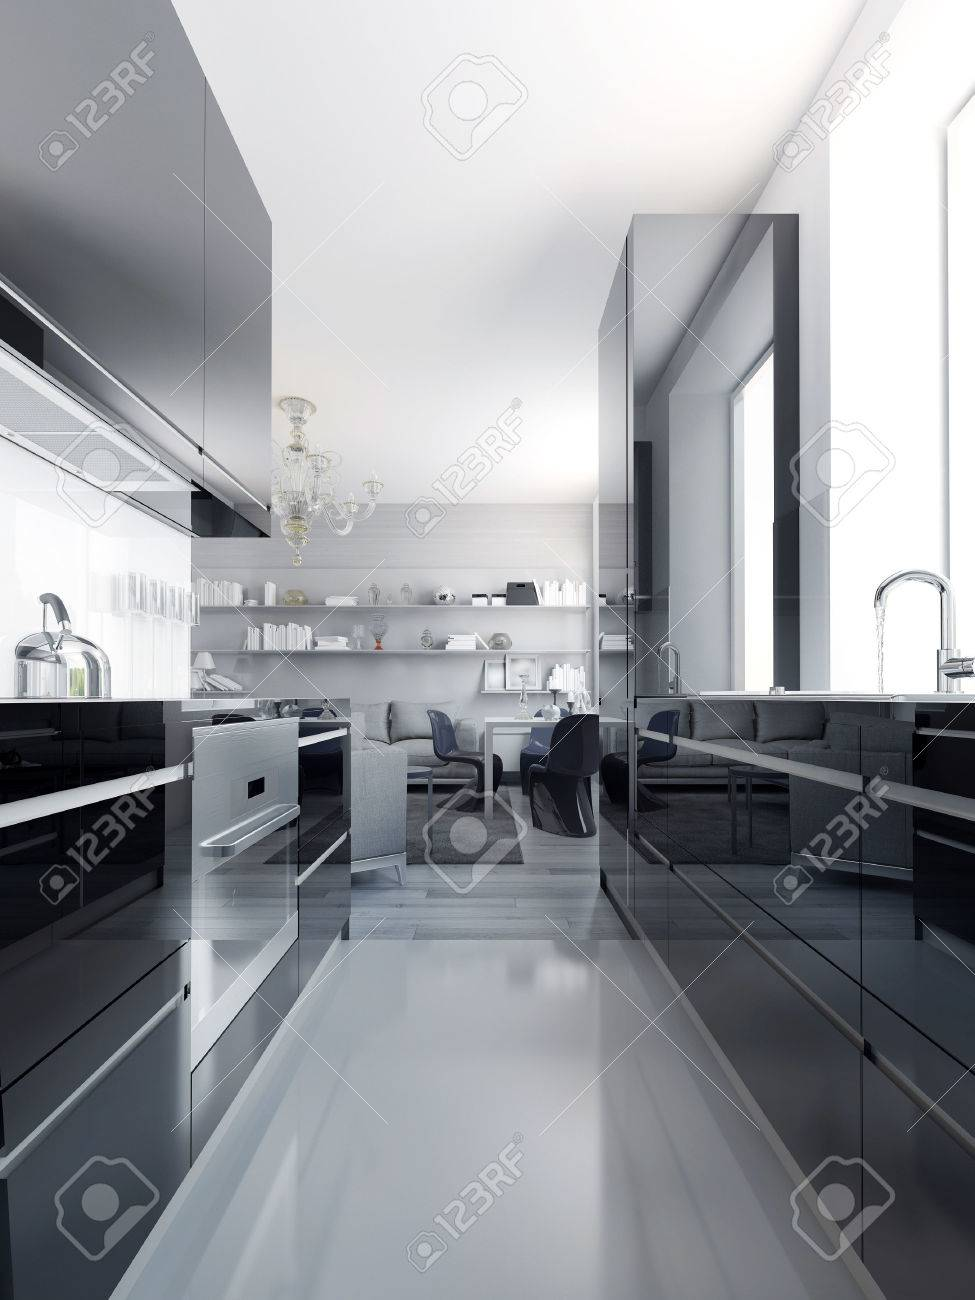 Modern Black Kitchen Interior. Glossy Cabinets Black Color With ...